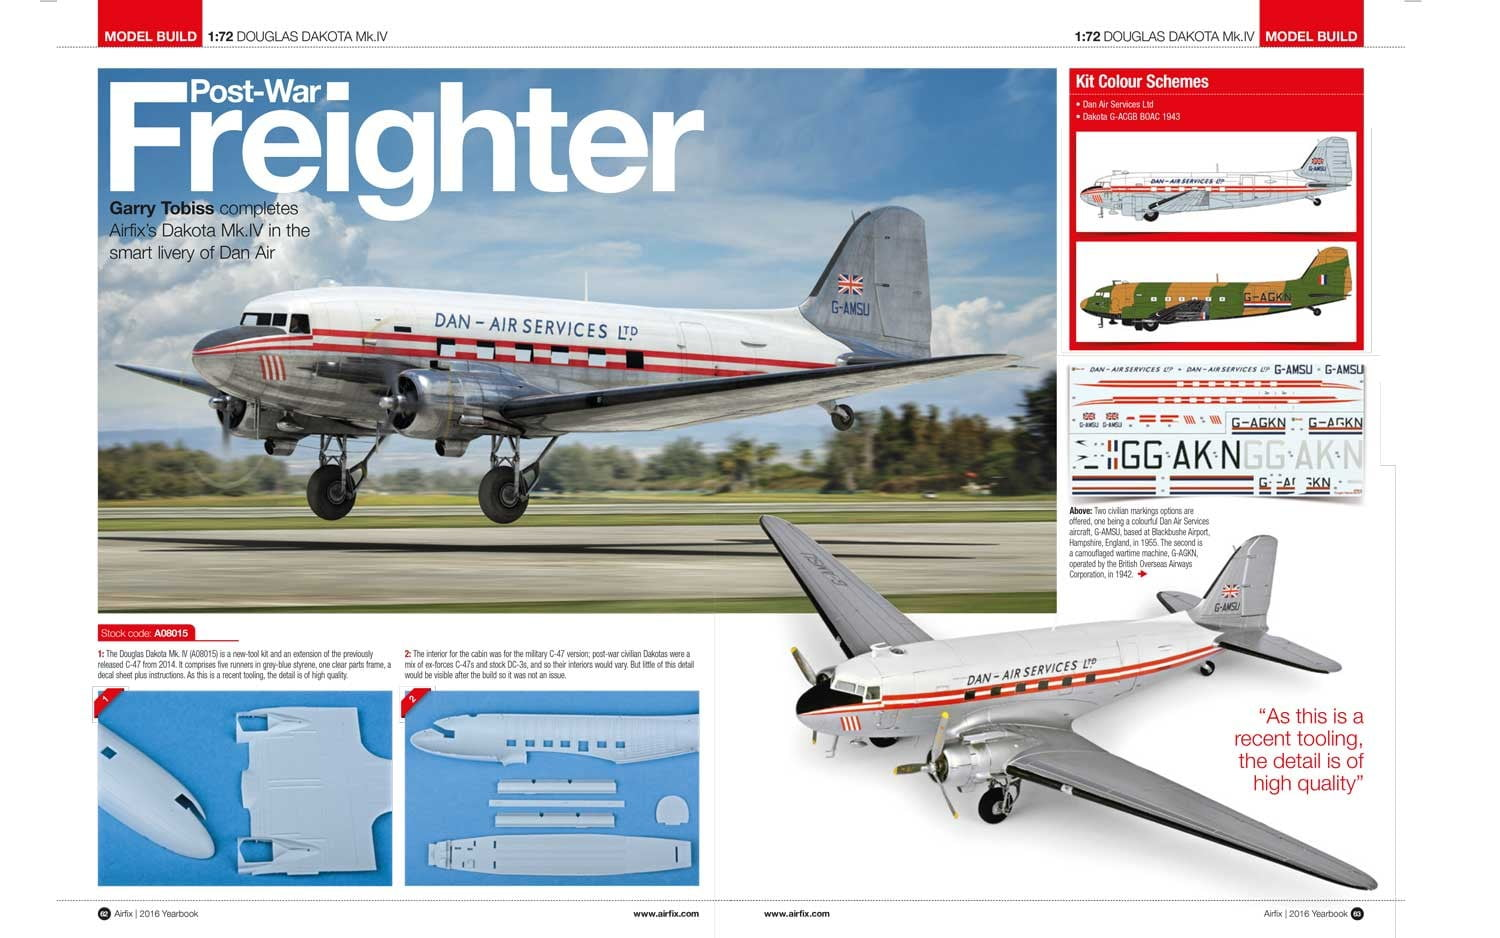 Airfix Yearbook 2016 Catalogue inside more planes